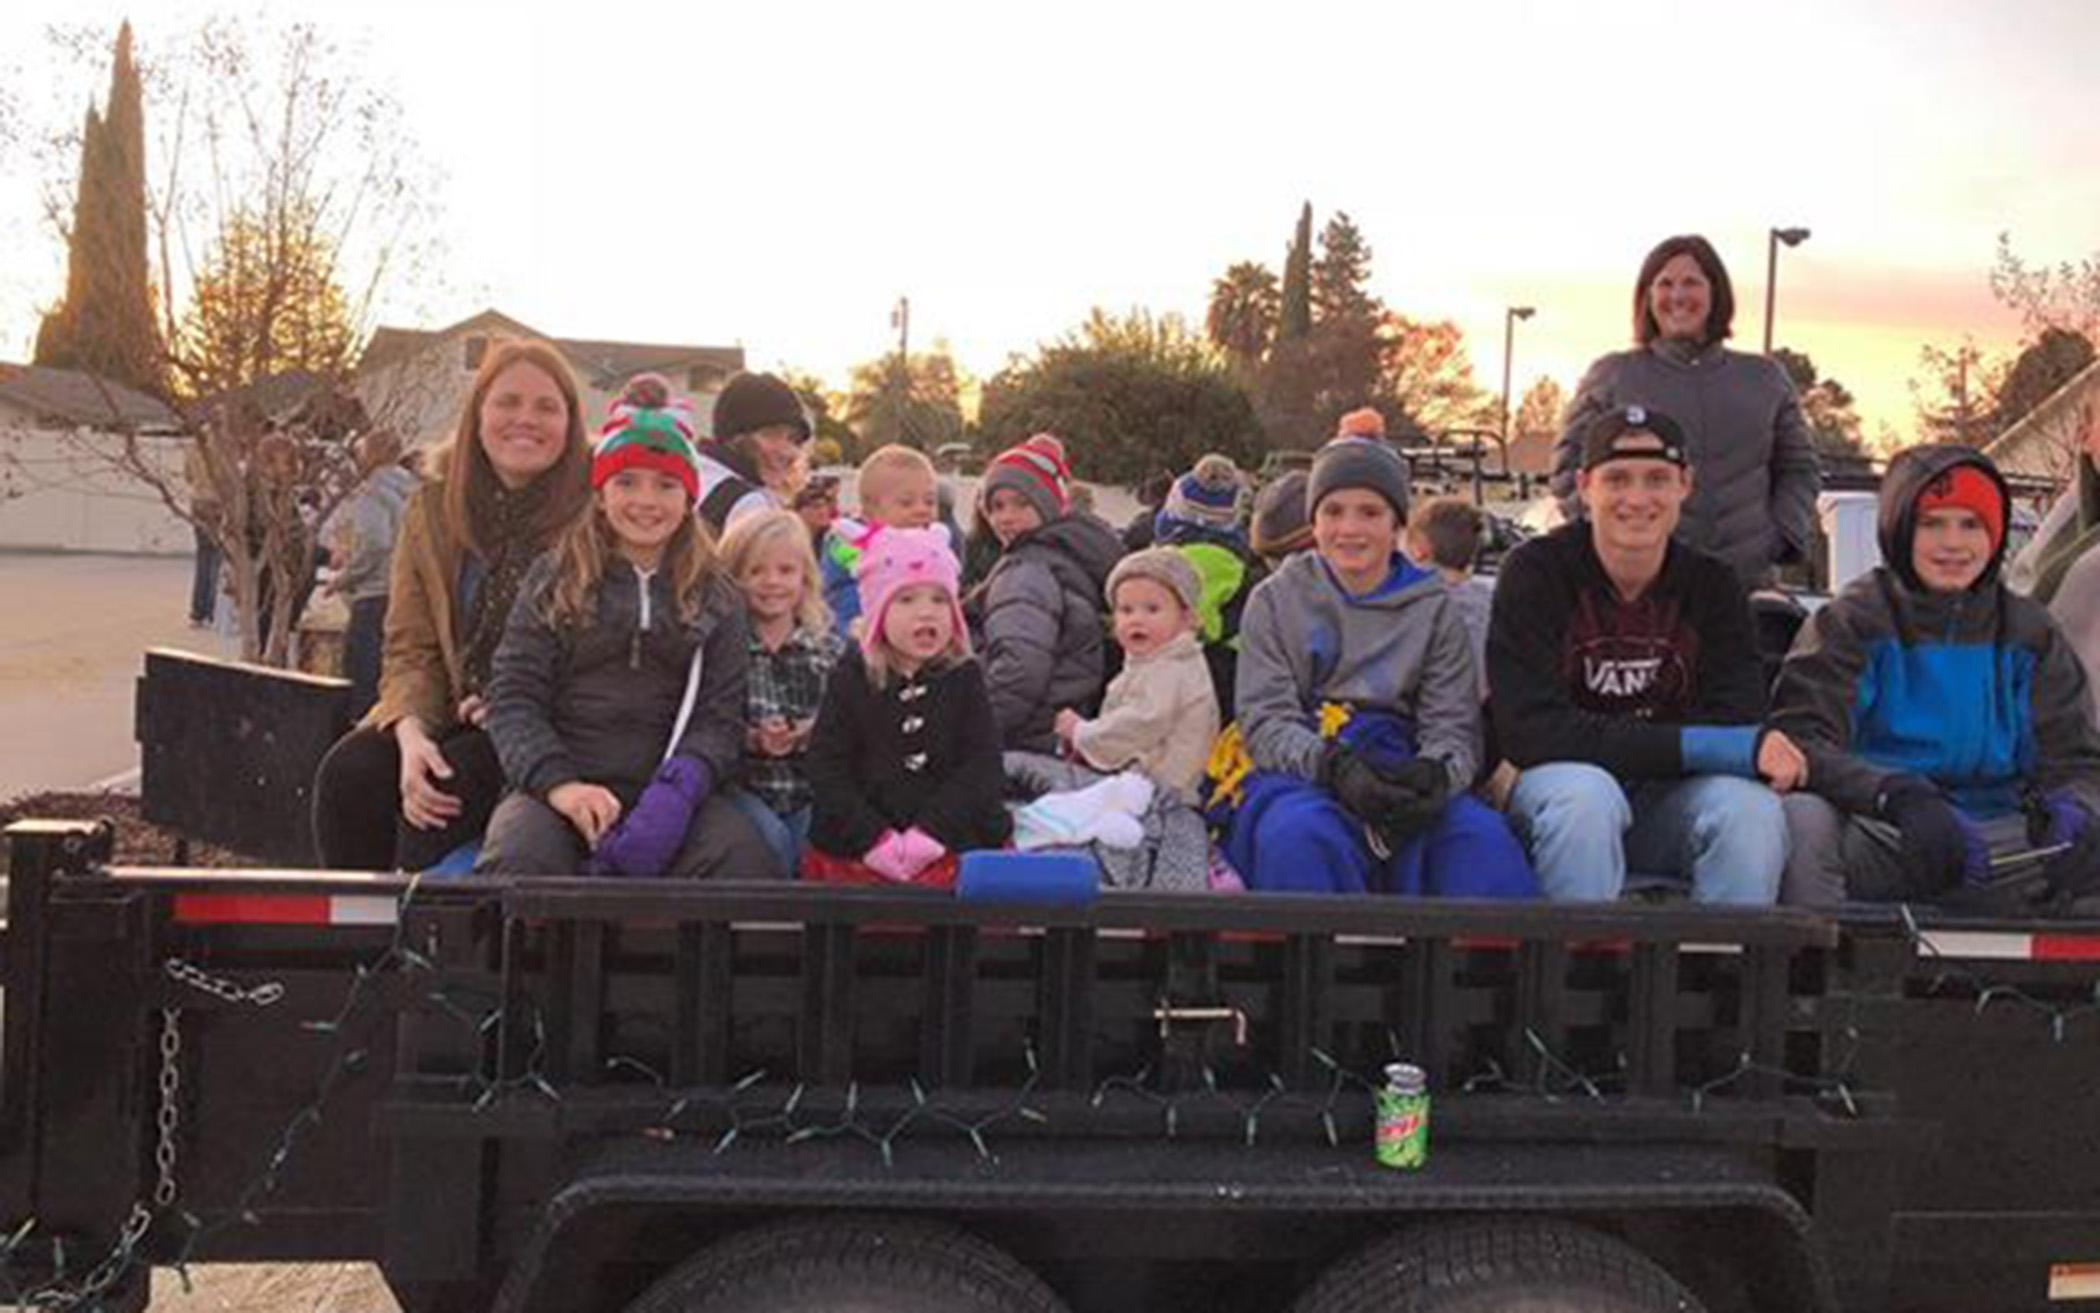 Caroling Hayride Brings Cheer to California Community